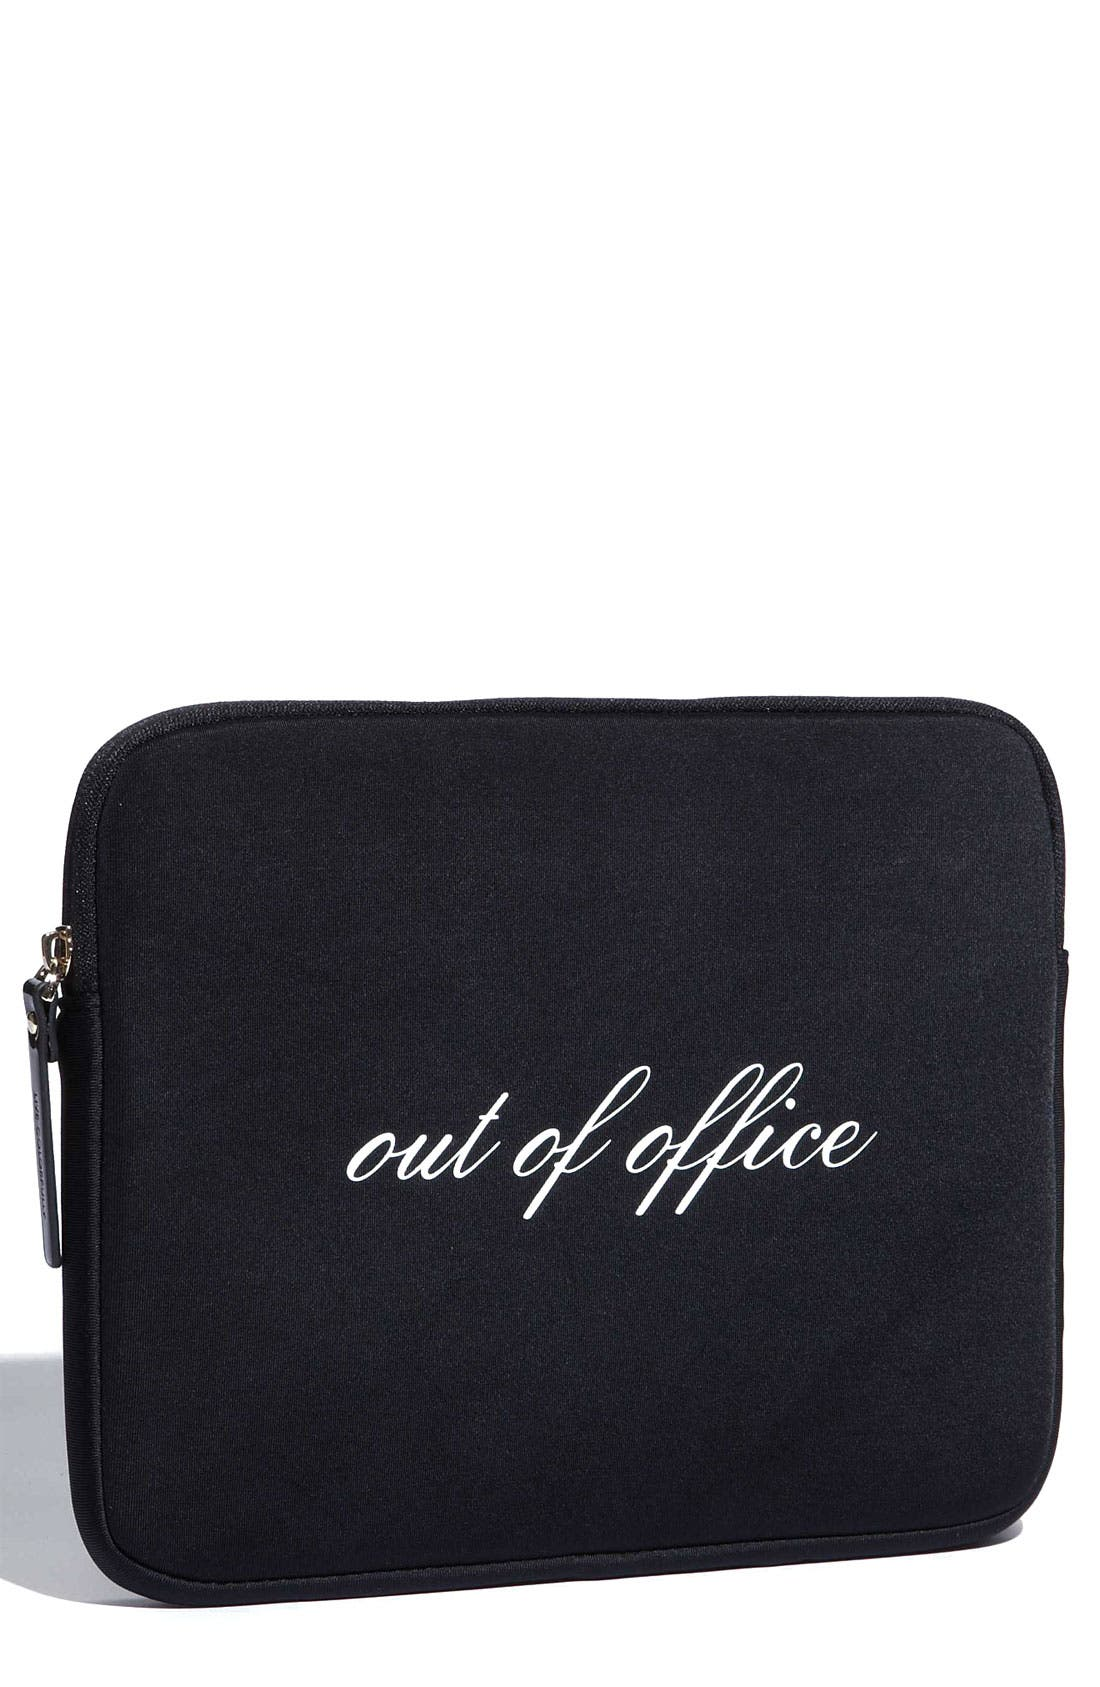 Main Image - kate spade new york 'out of office' iPad sleeve